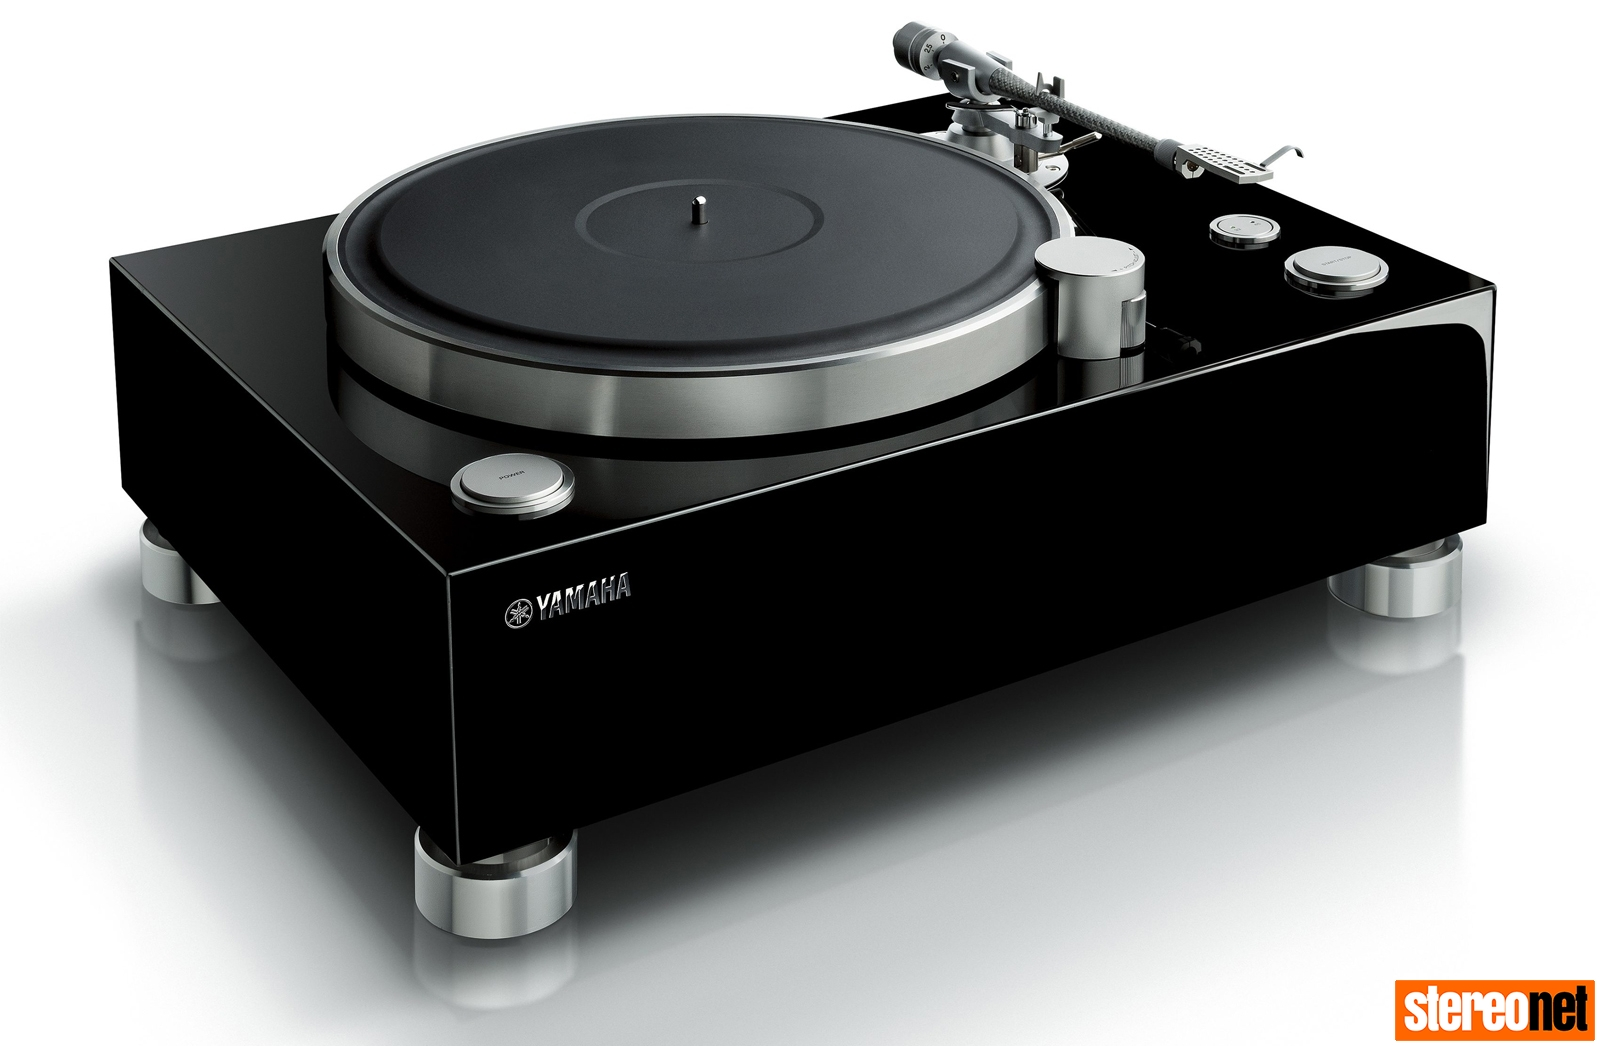 Yamaha GT-5000 Turntable 2018